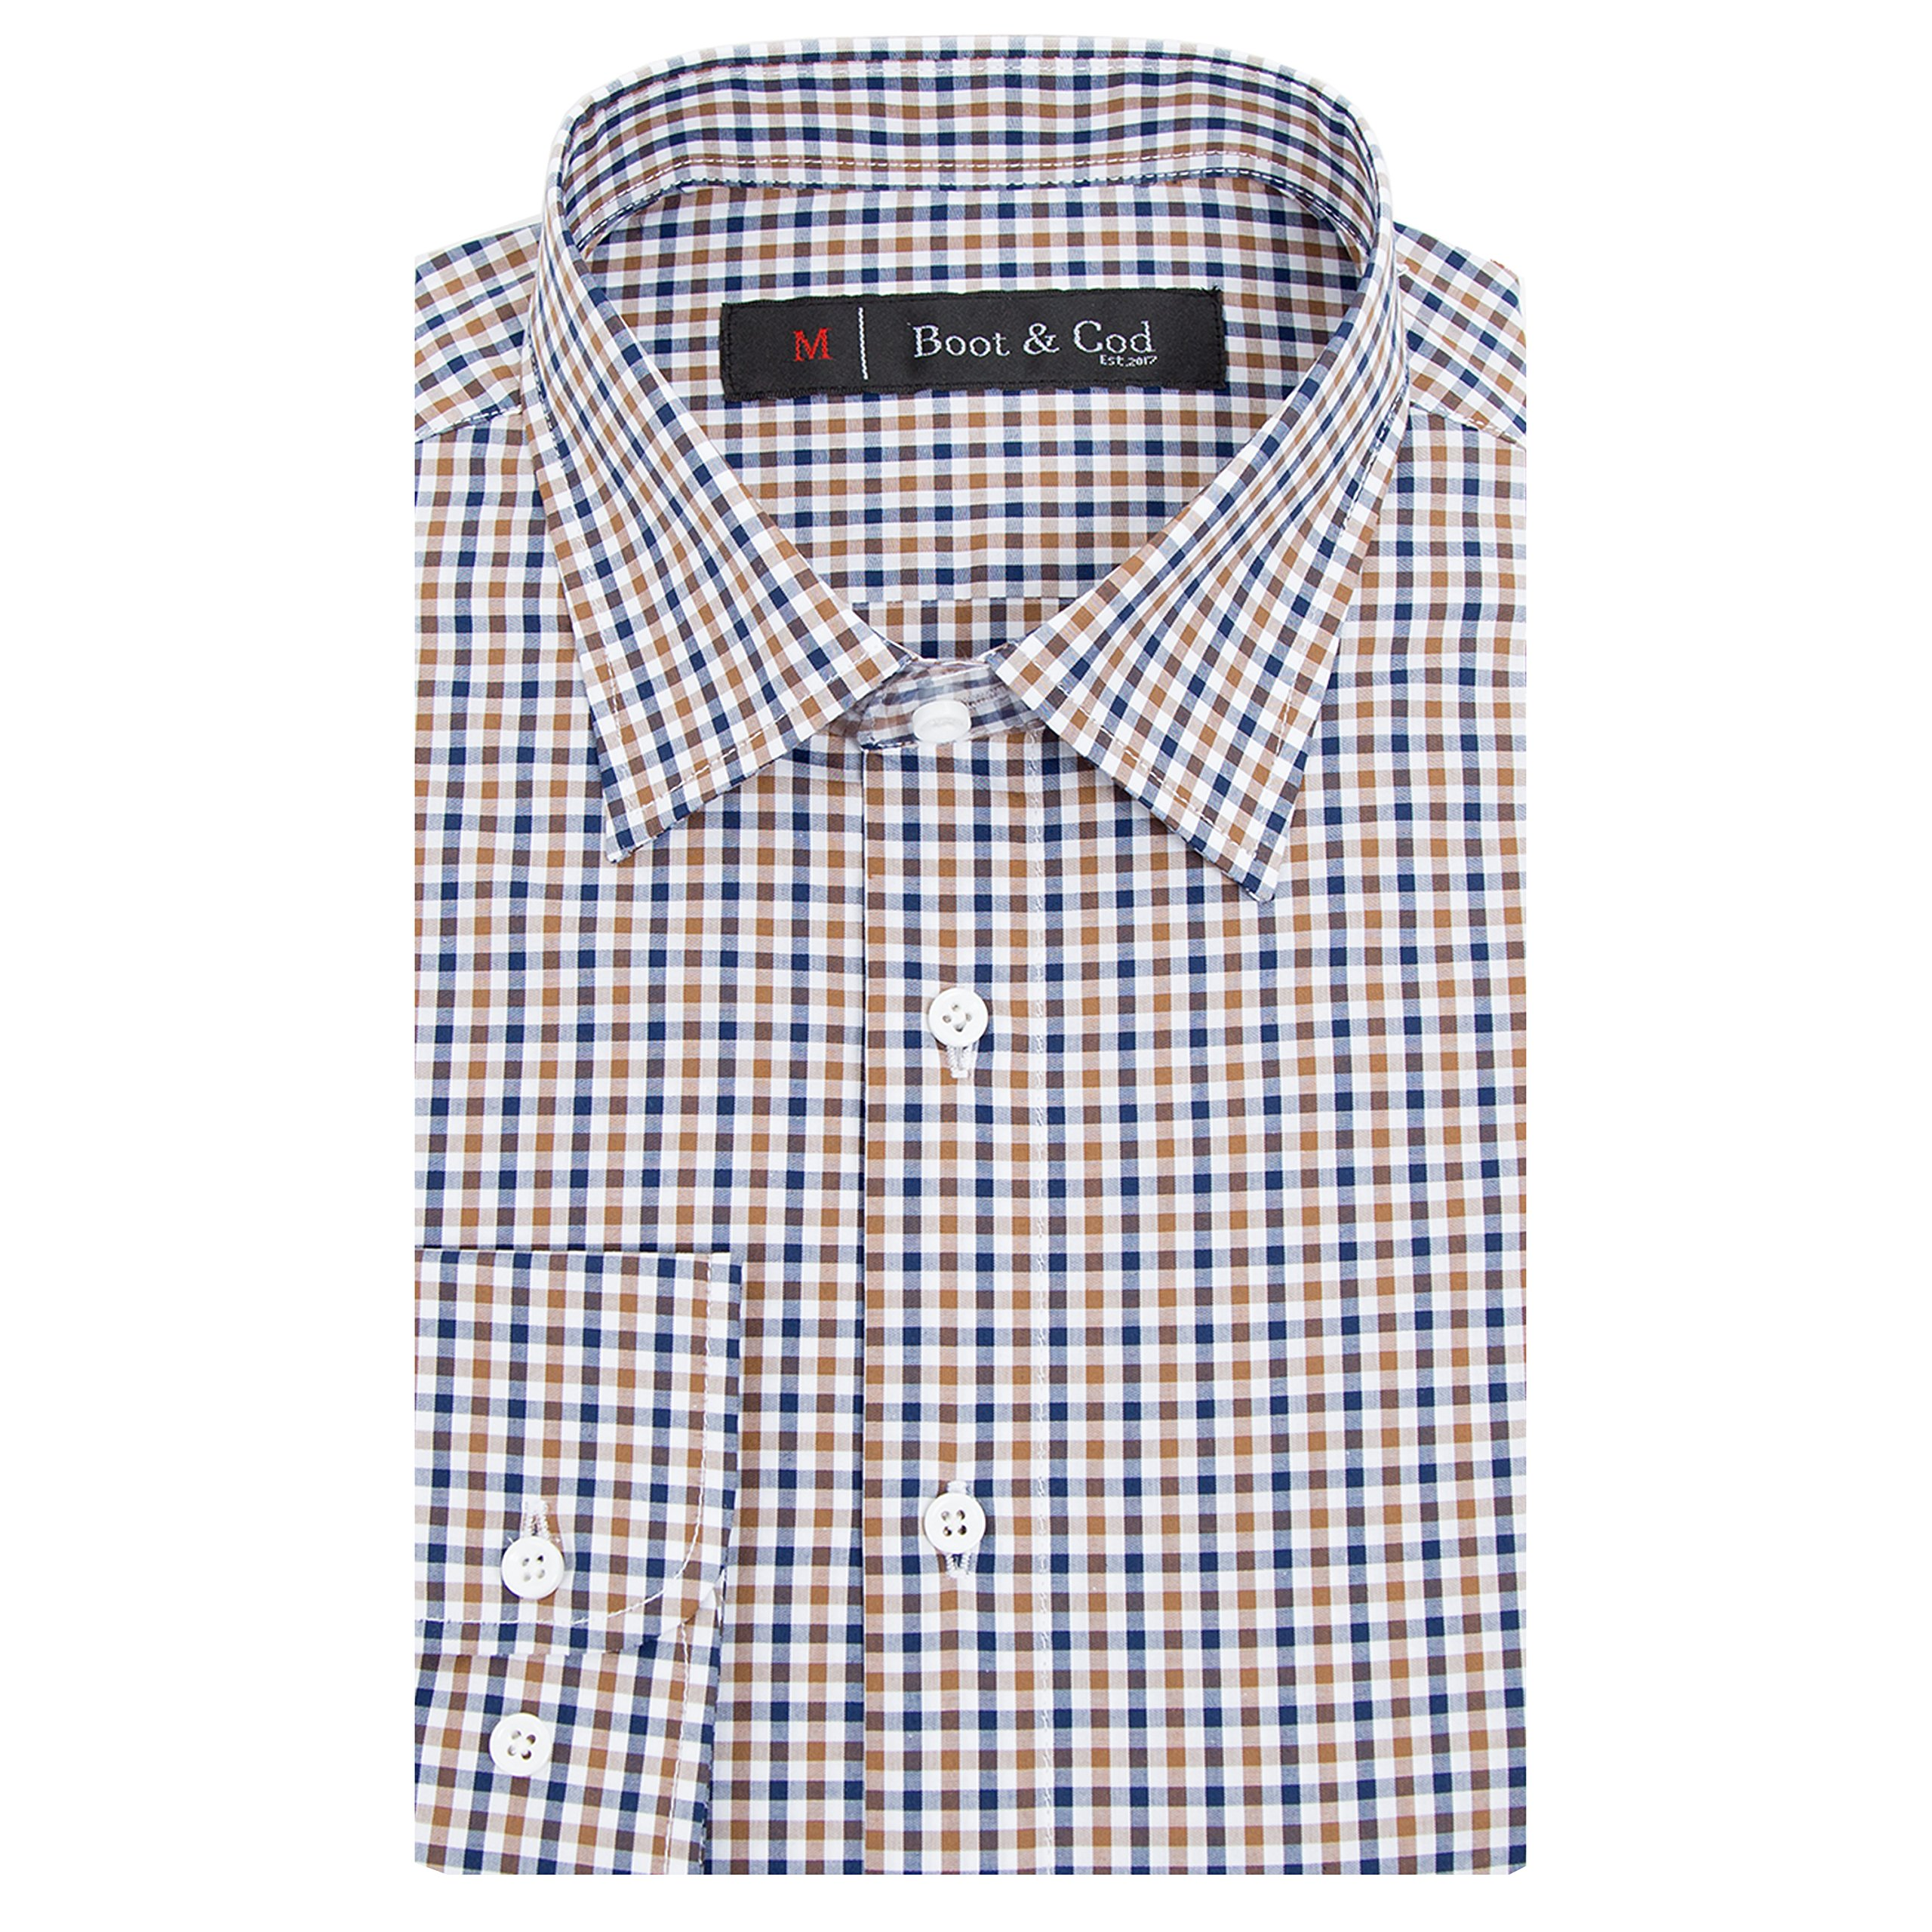 Boot & Cod Men's Blue Brown Gingham Fitted Long Sleeve Button Down Dress Shirt - S